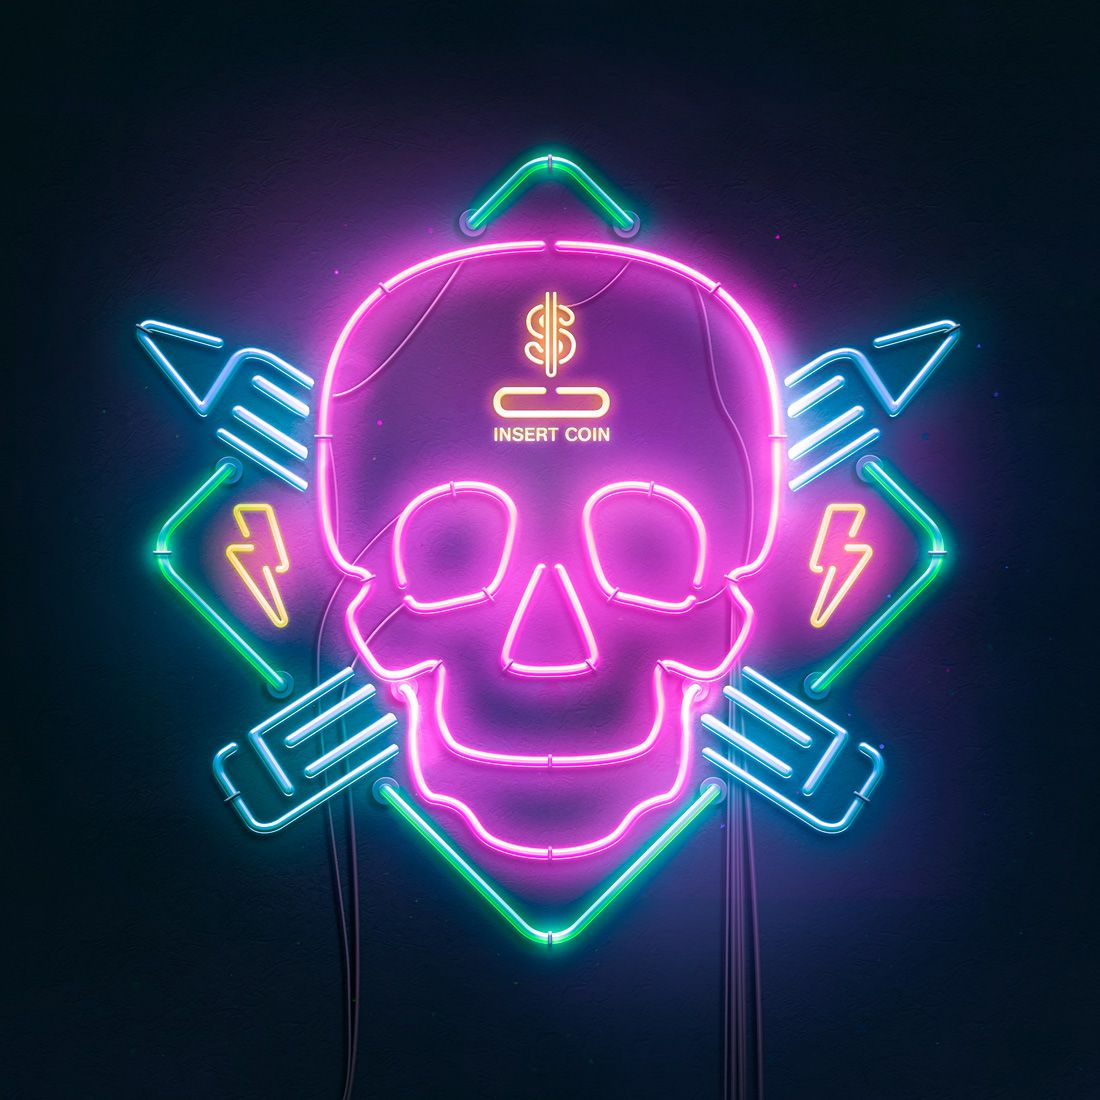 Pin by Kai Yu Kamm on Decor Neon typography, Neon signs